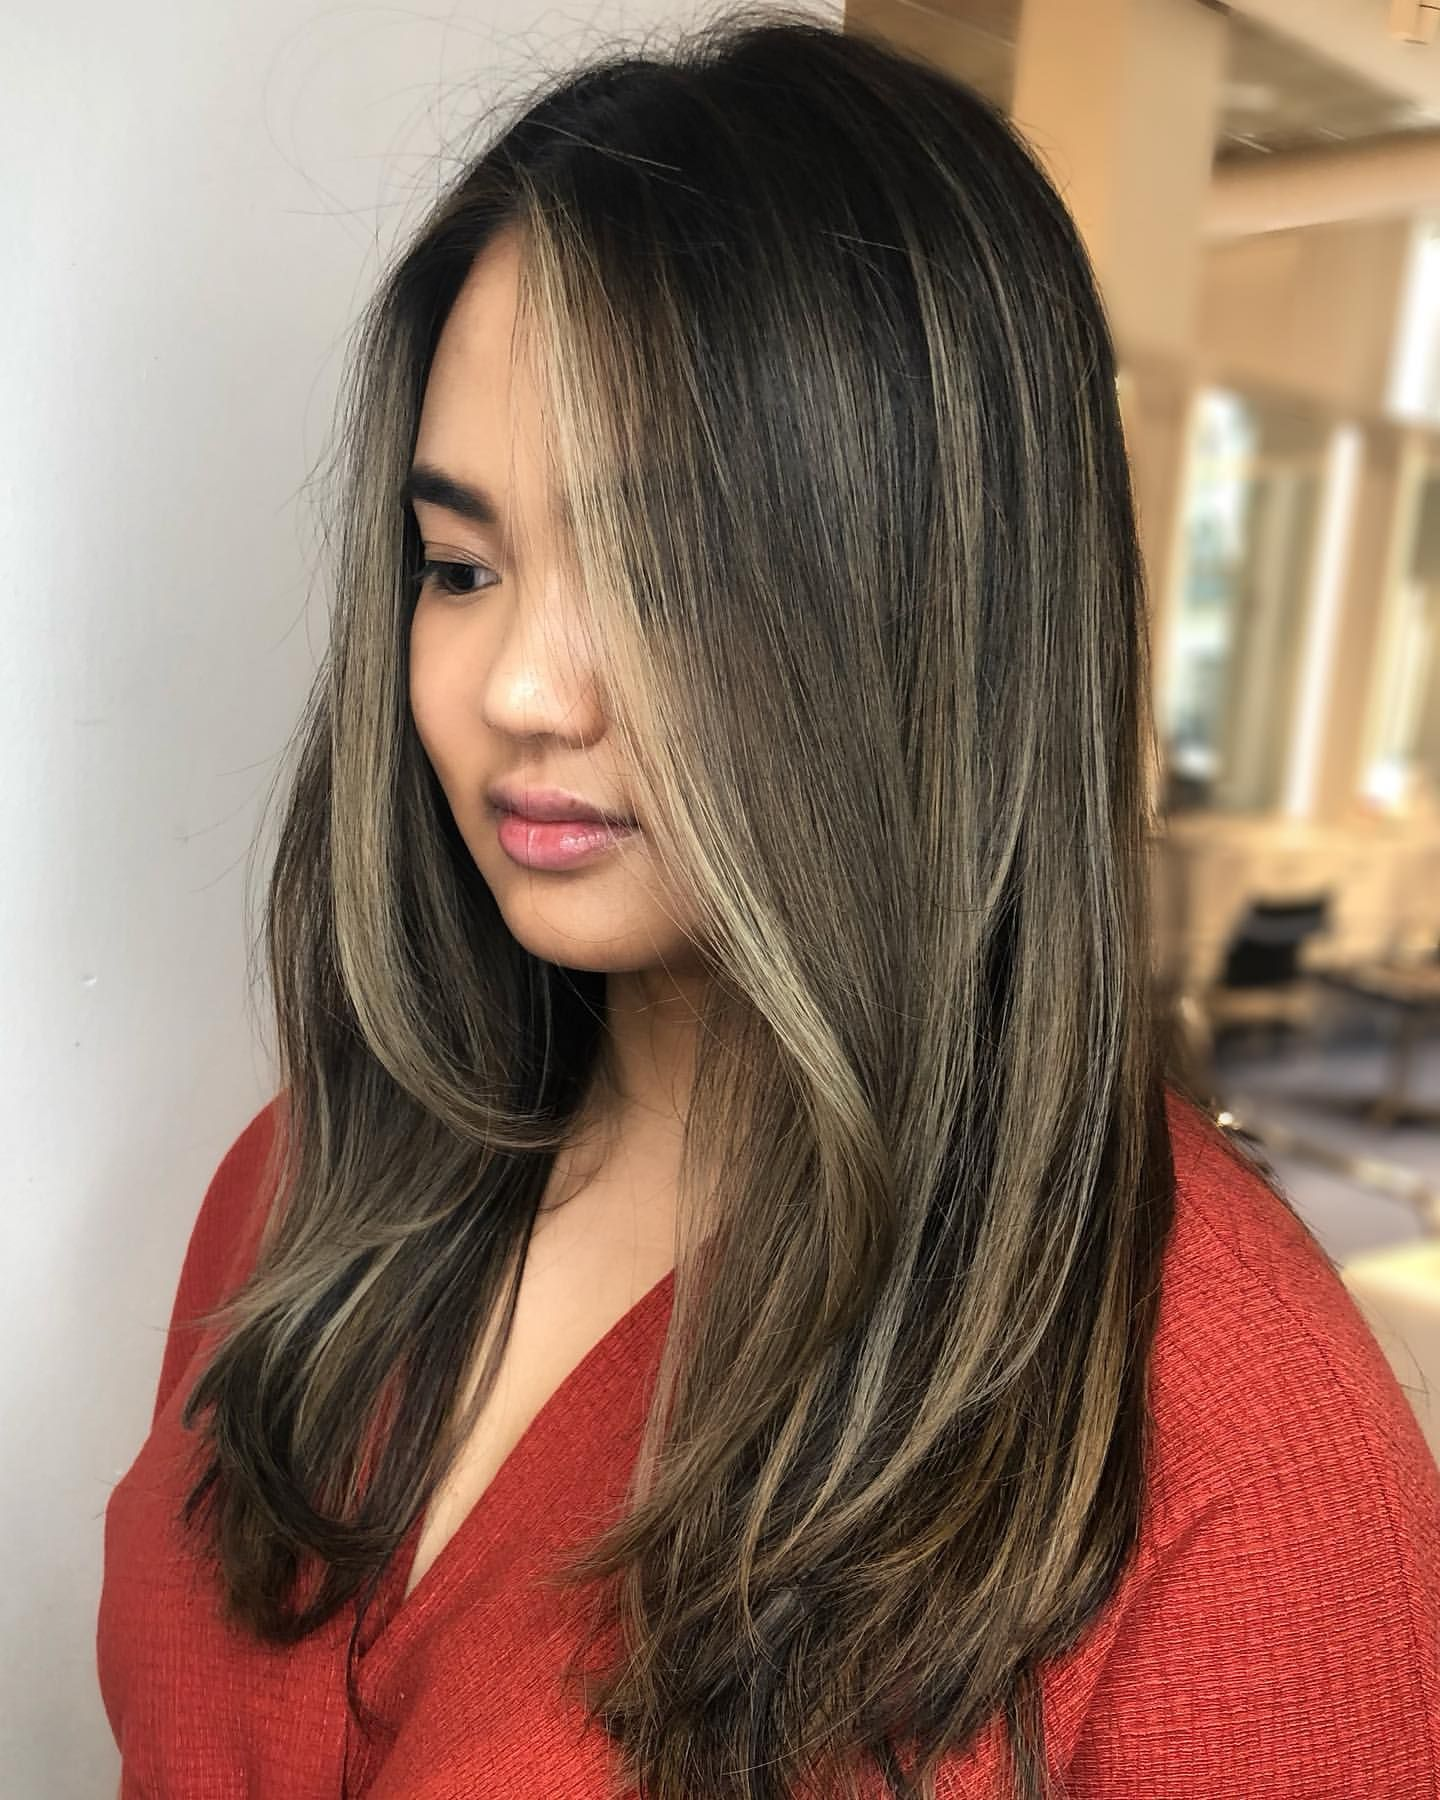 32 perfect hairstyles for round face women in 2020 in 2020